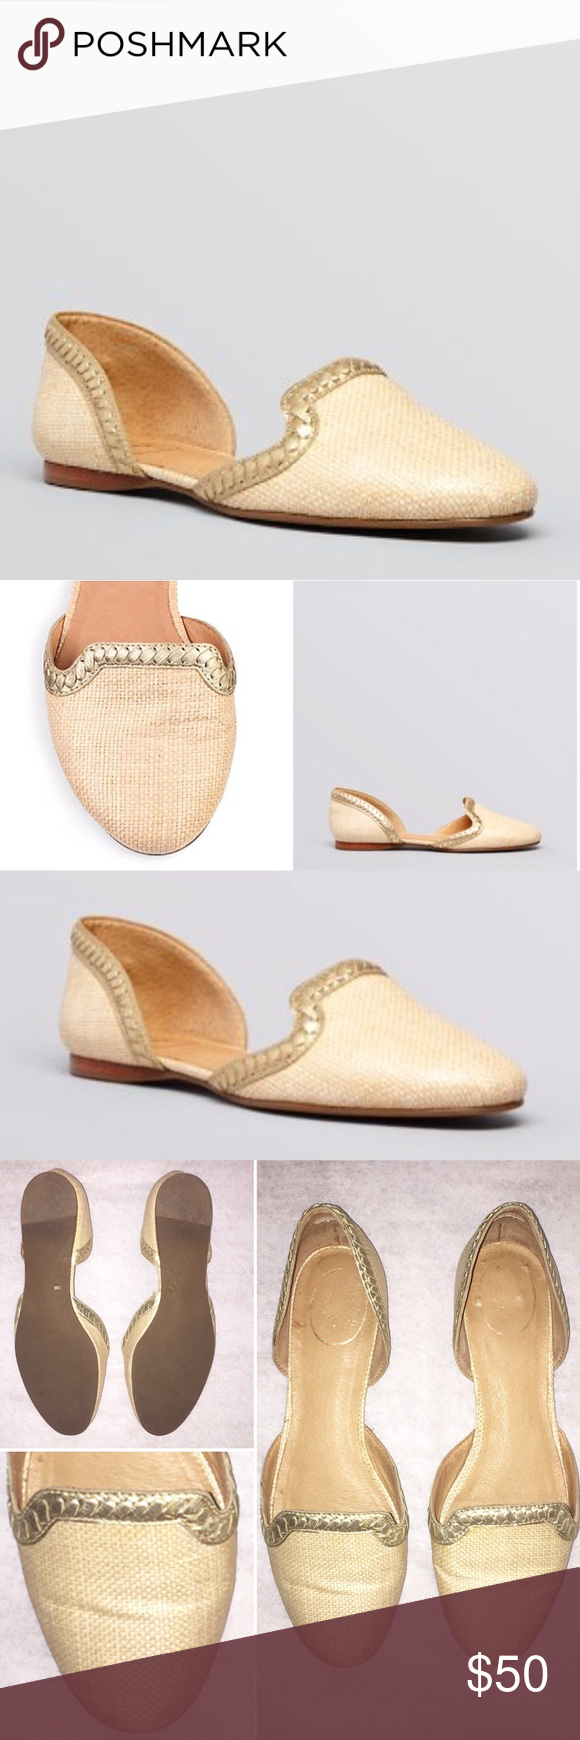 Jack Rogers D'Orsay Contessa Flats | Abs, Jack rogers and Gold leather